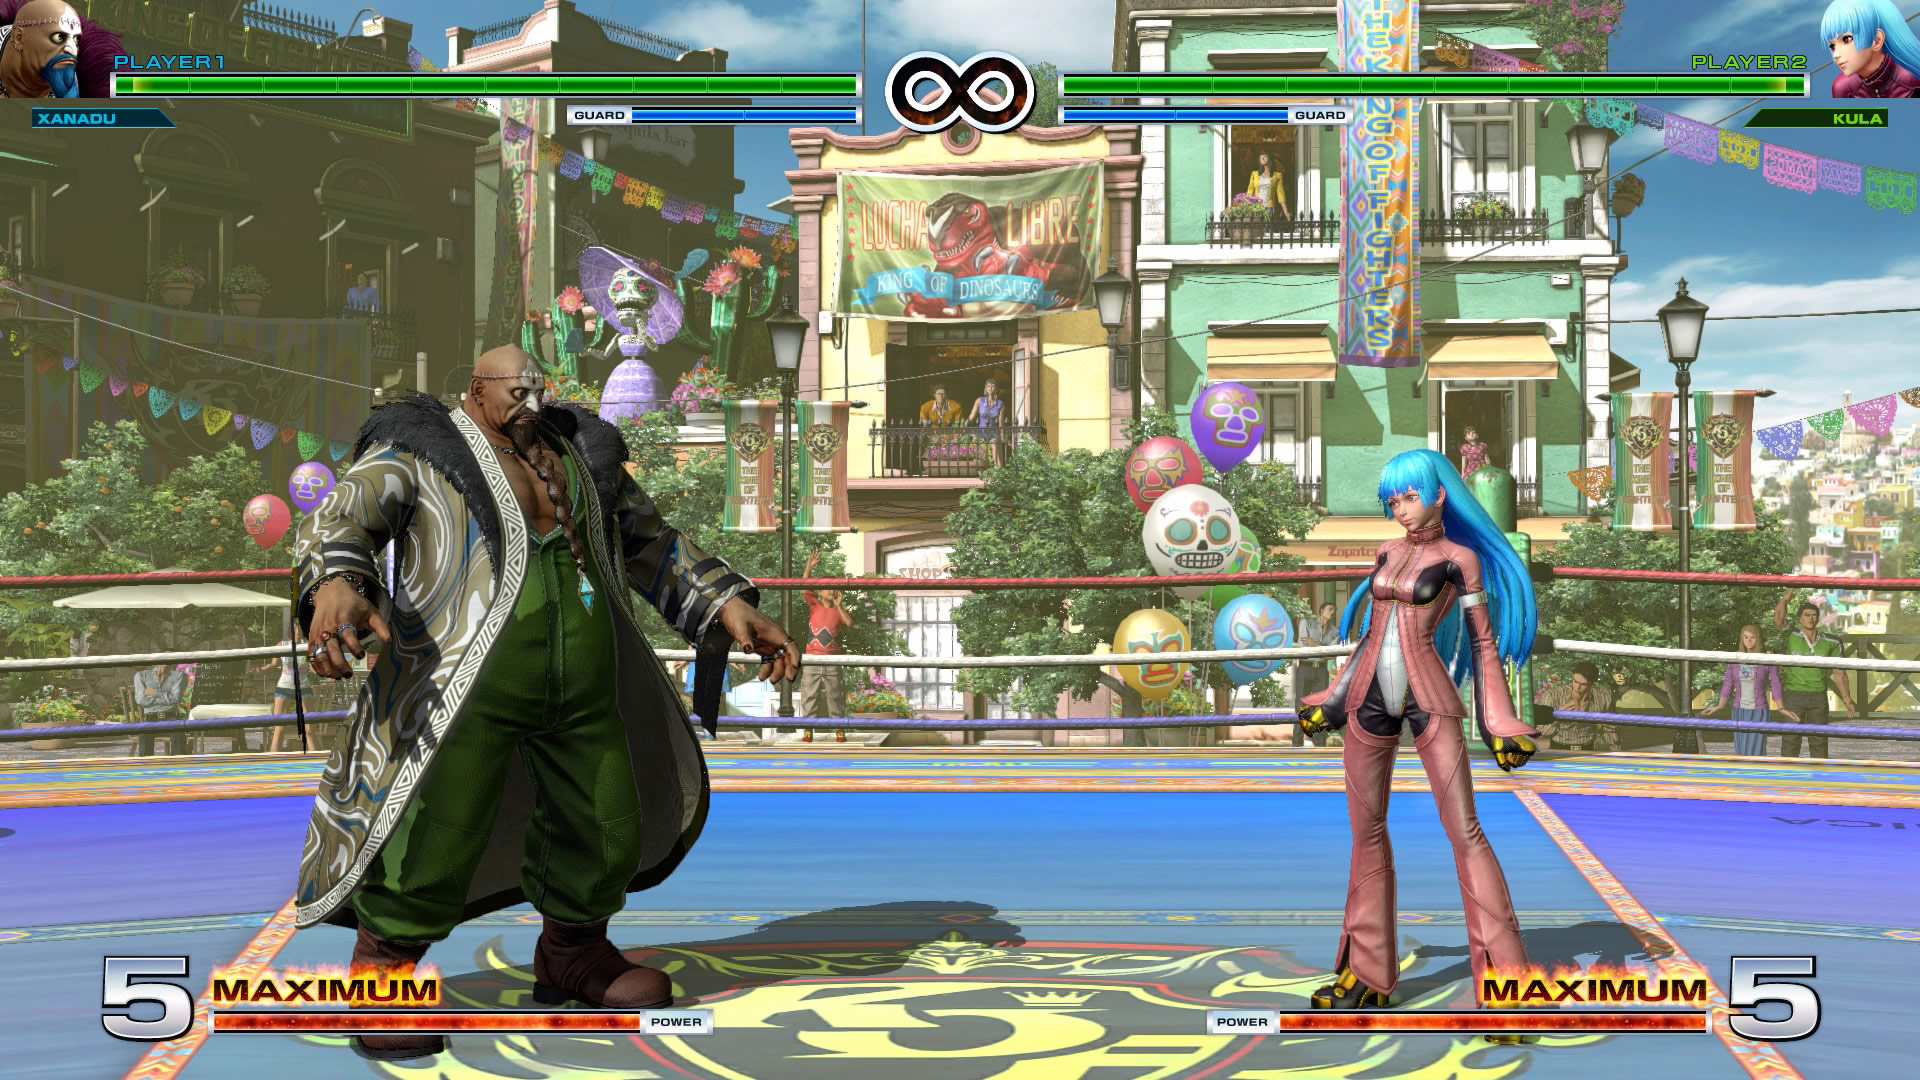 King of Fighters 14 1.10 graphics update 21 out of 60 image gallery